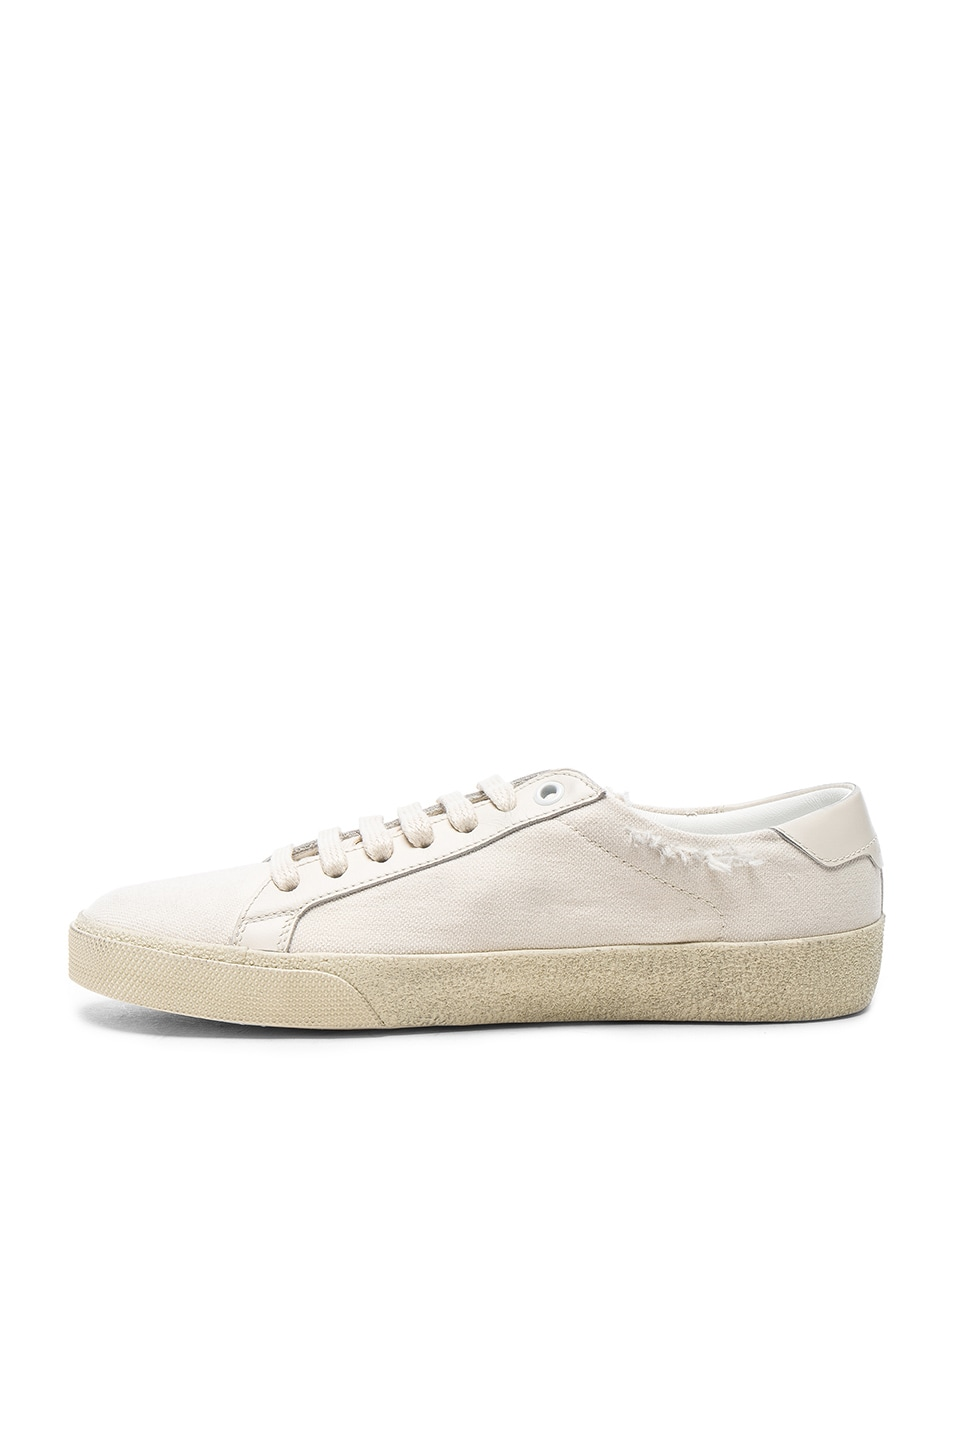 Image 5 of Saint Laurent Leather Court Classic Logo Sneakers in Optic White & Black